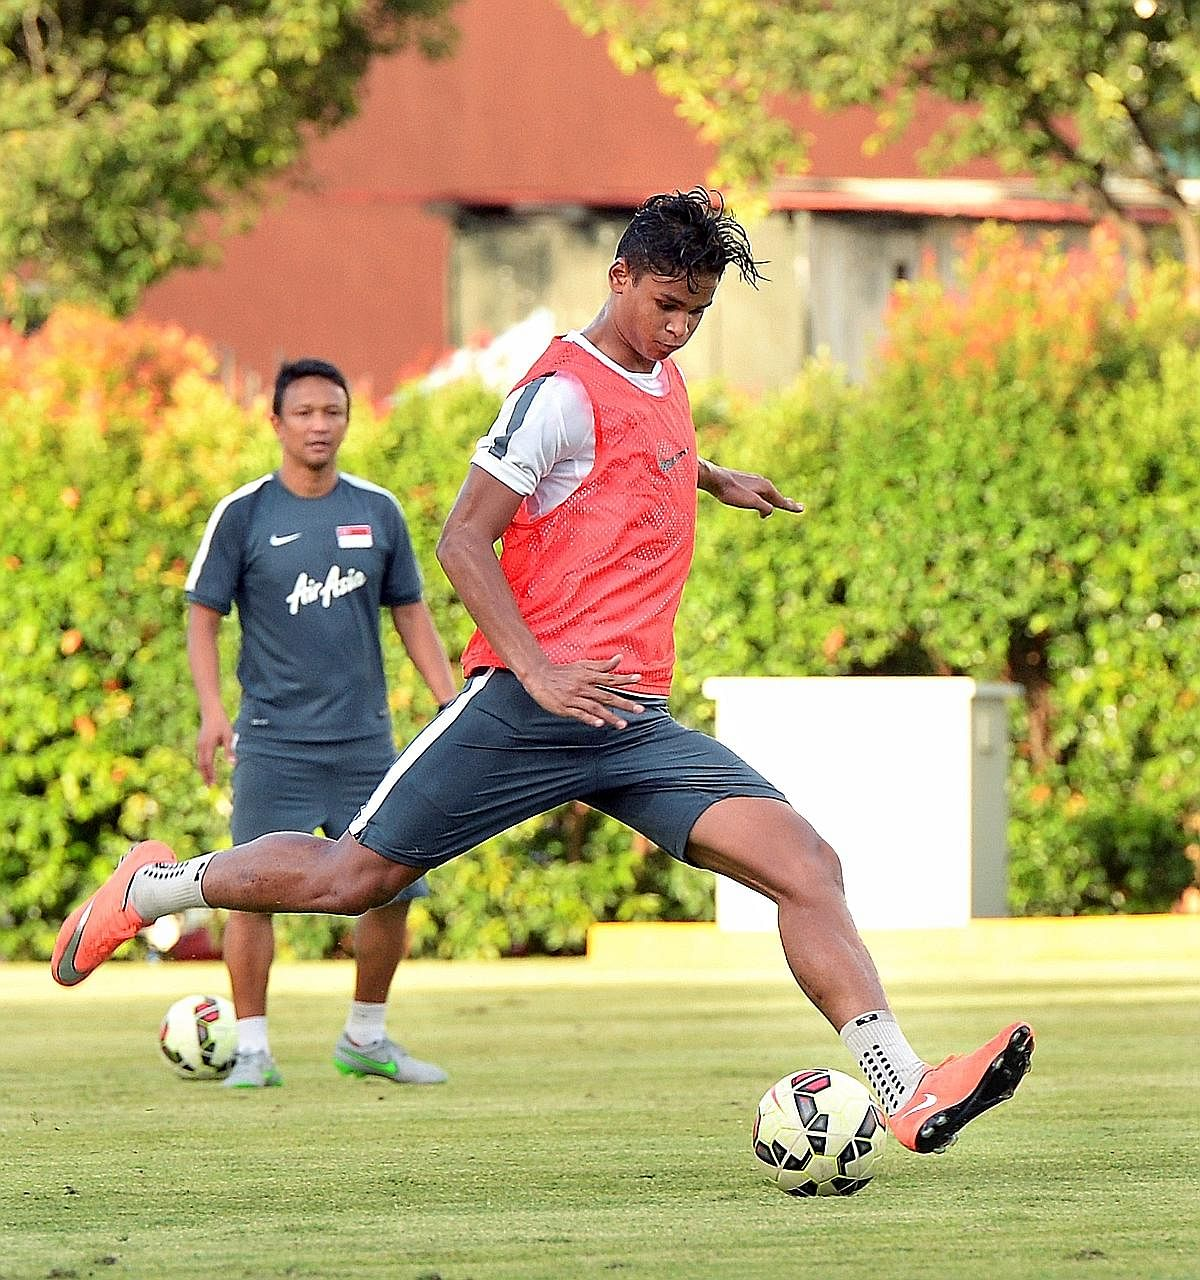 Irfan Fandi shaping to shoot during his first training session with the senior national team in March as his father Fandi Ahmad watches on at the Geylang Field. The 19-year-old may receive his first senior cap against Malaysia next week.